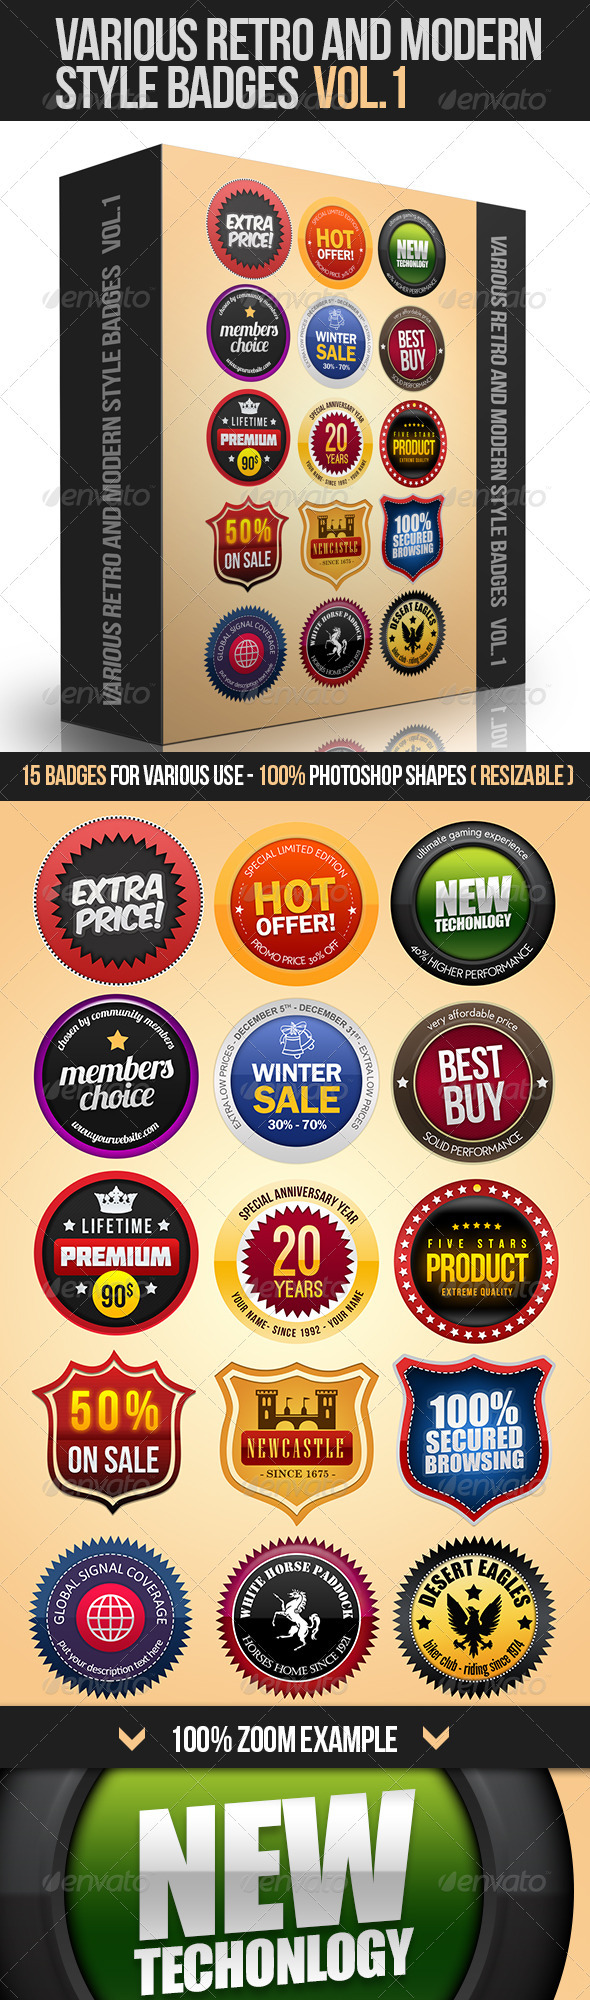 Various Retro And Modern Style Badges Vol.1 - Badges & Stickers Web Elements